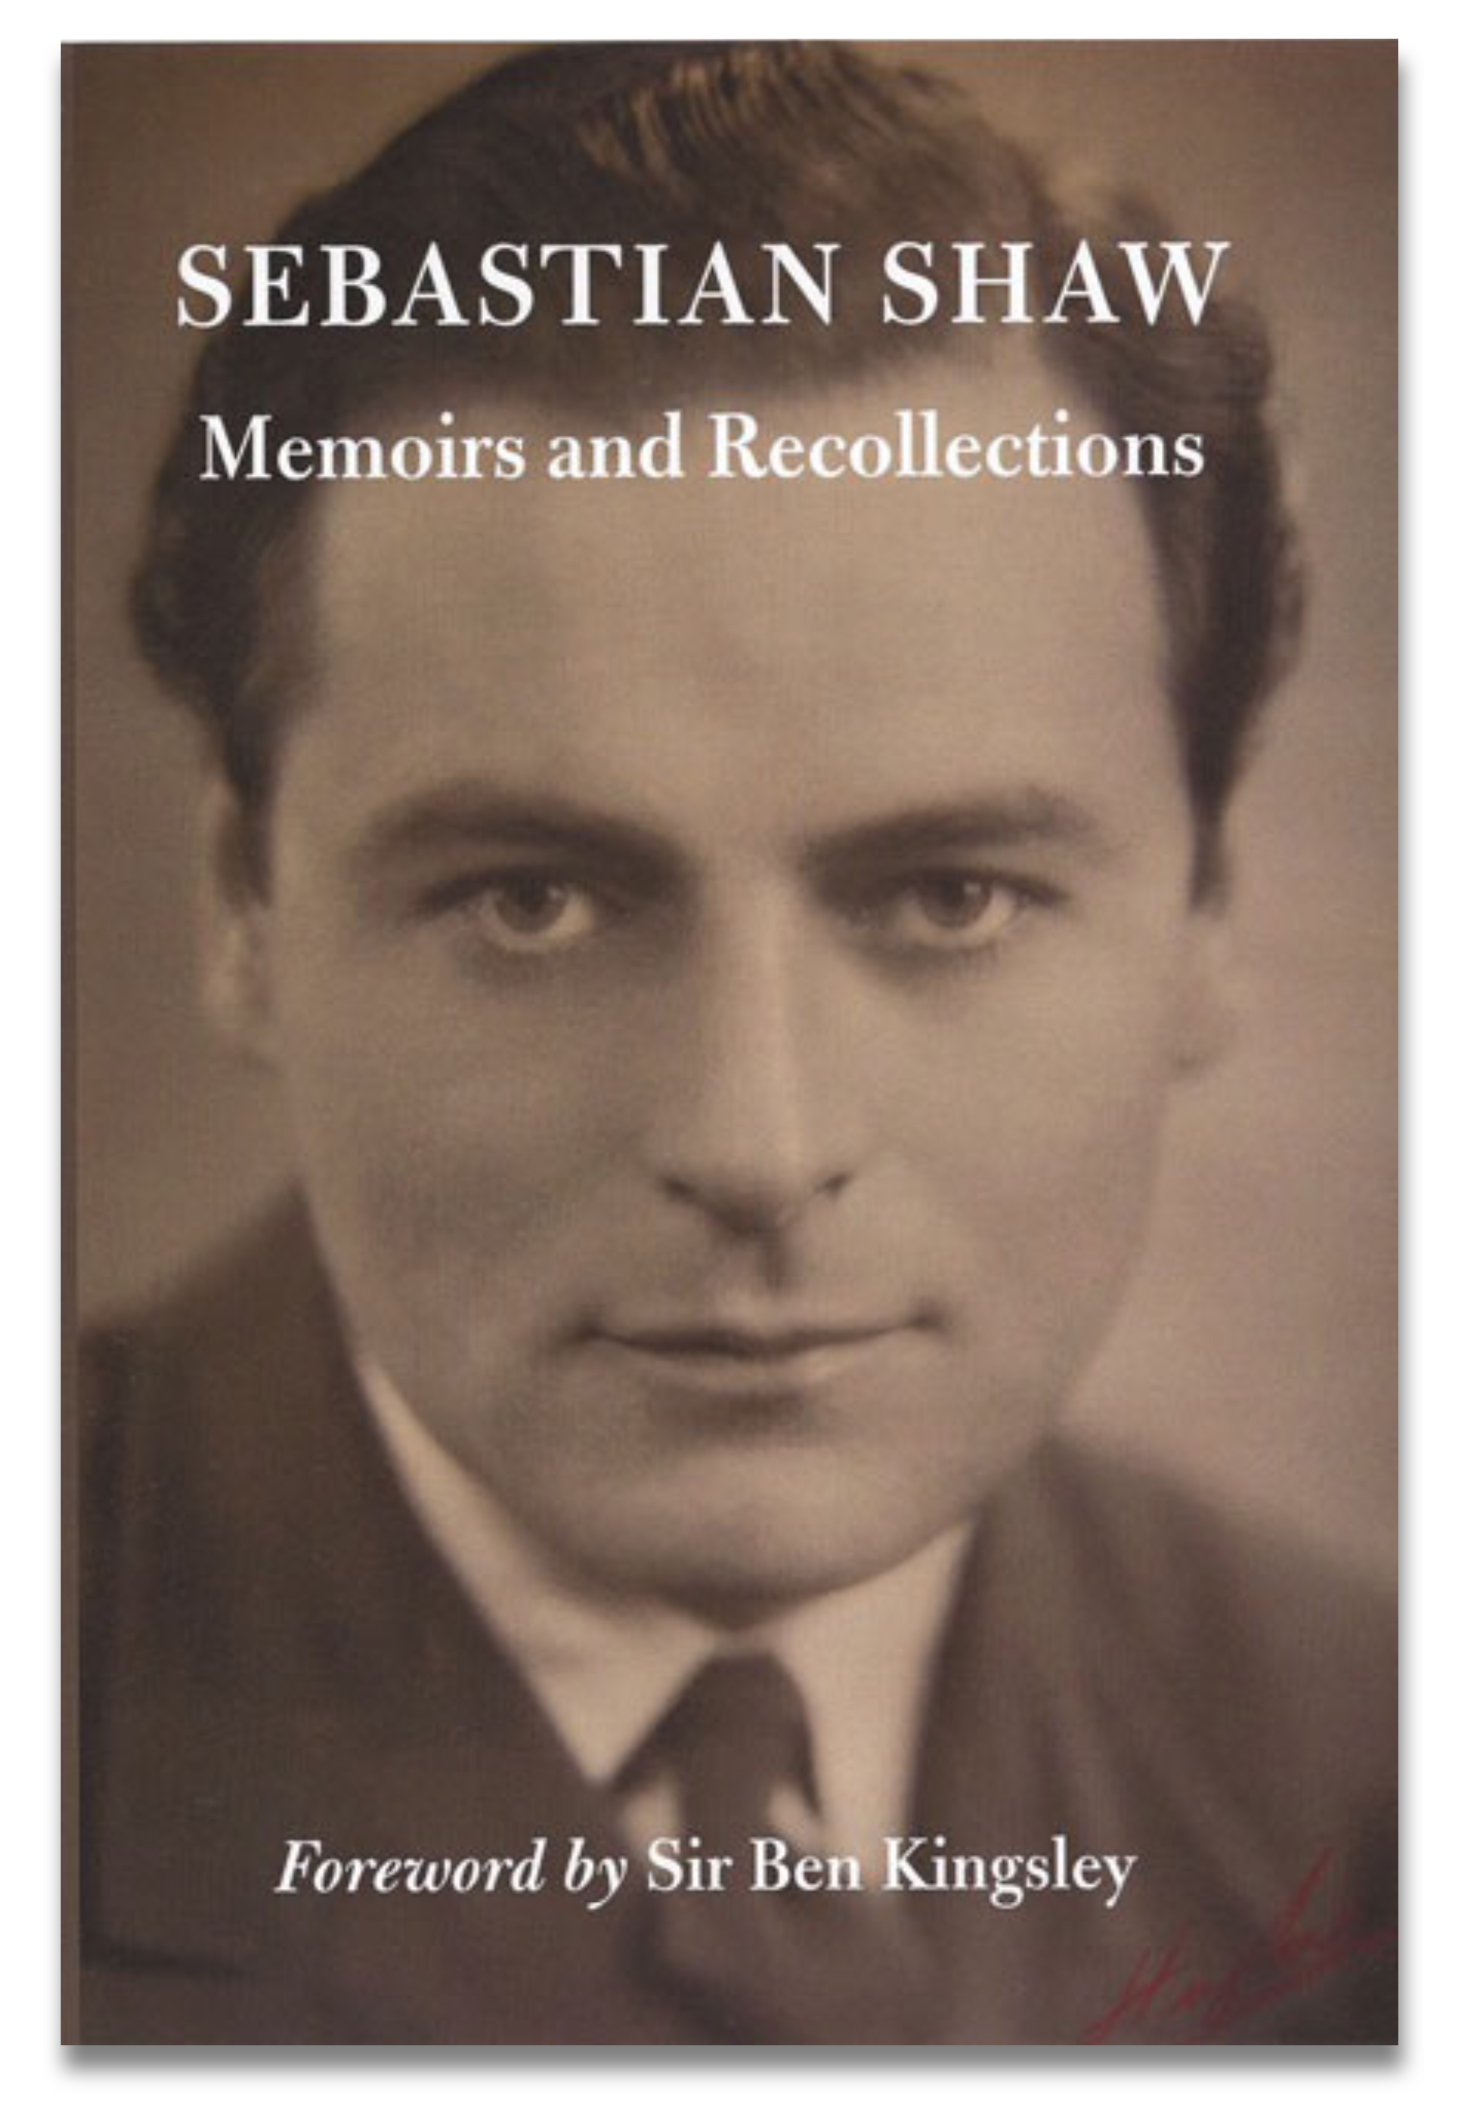 Sebastian Shaw: Memoirs and Recollections